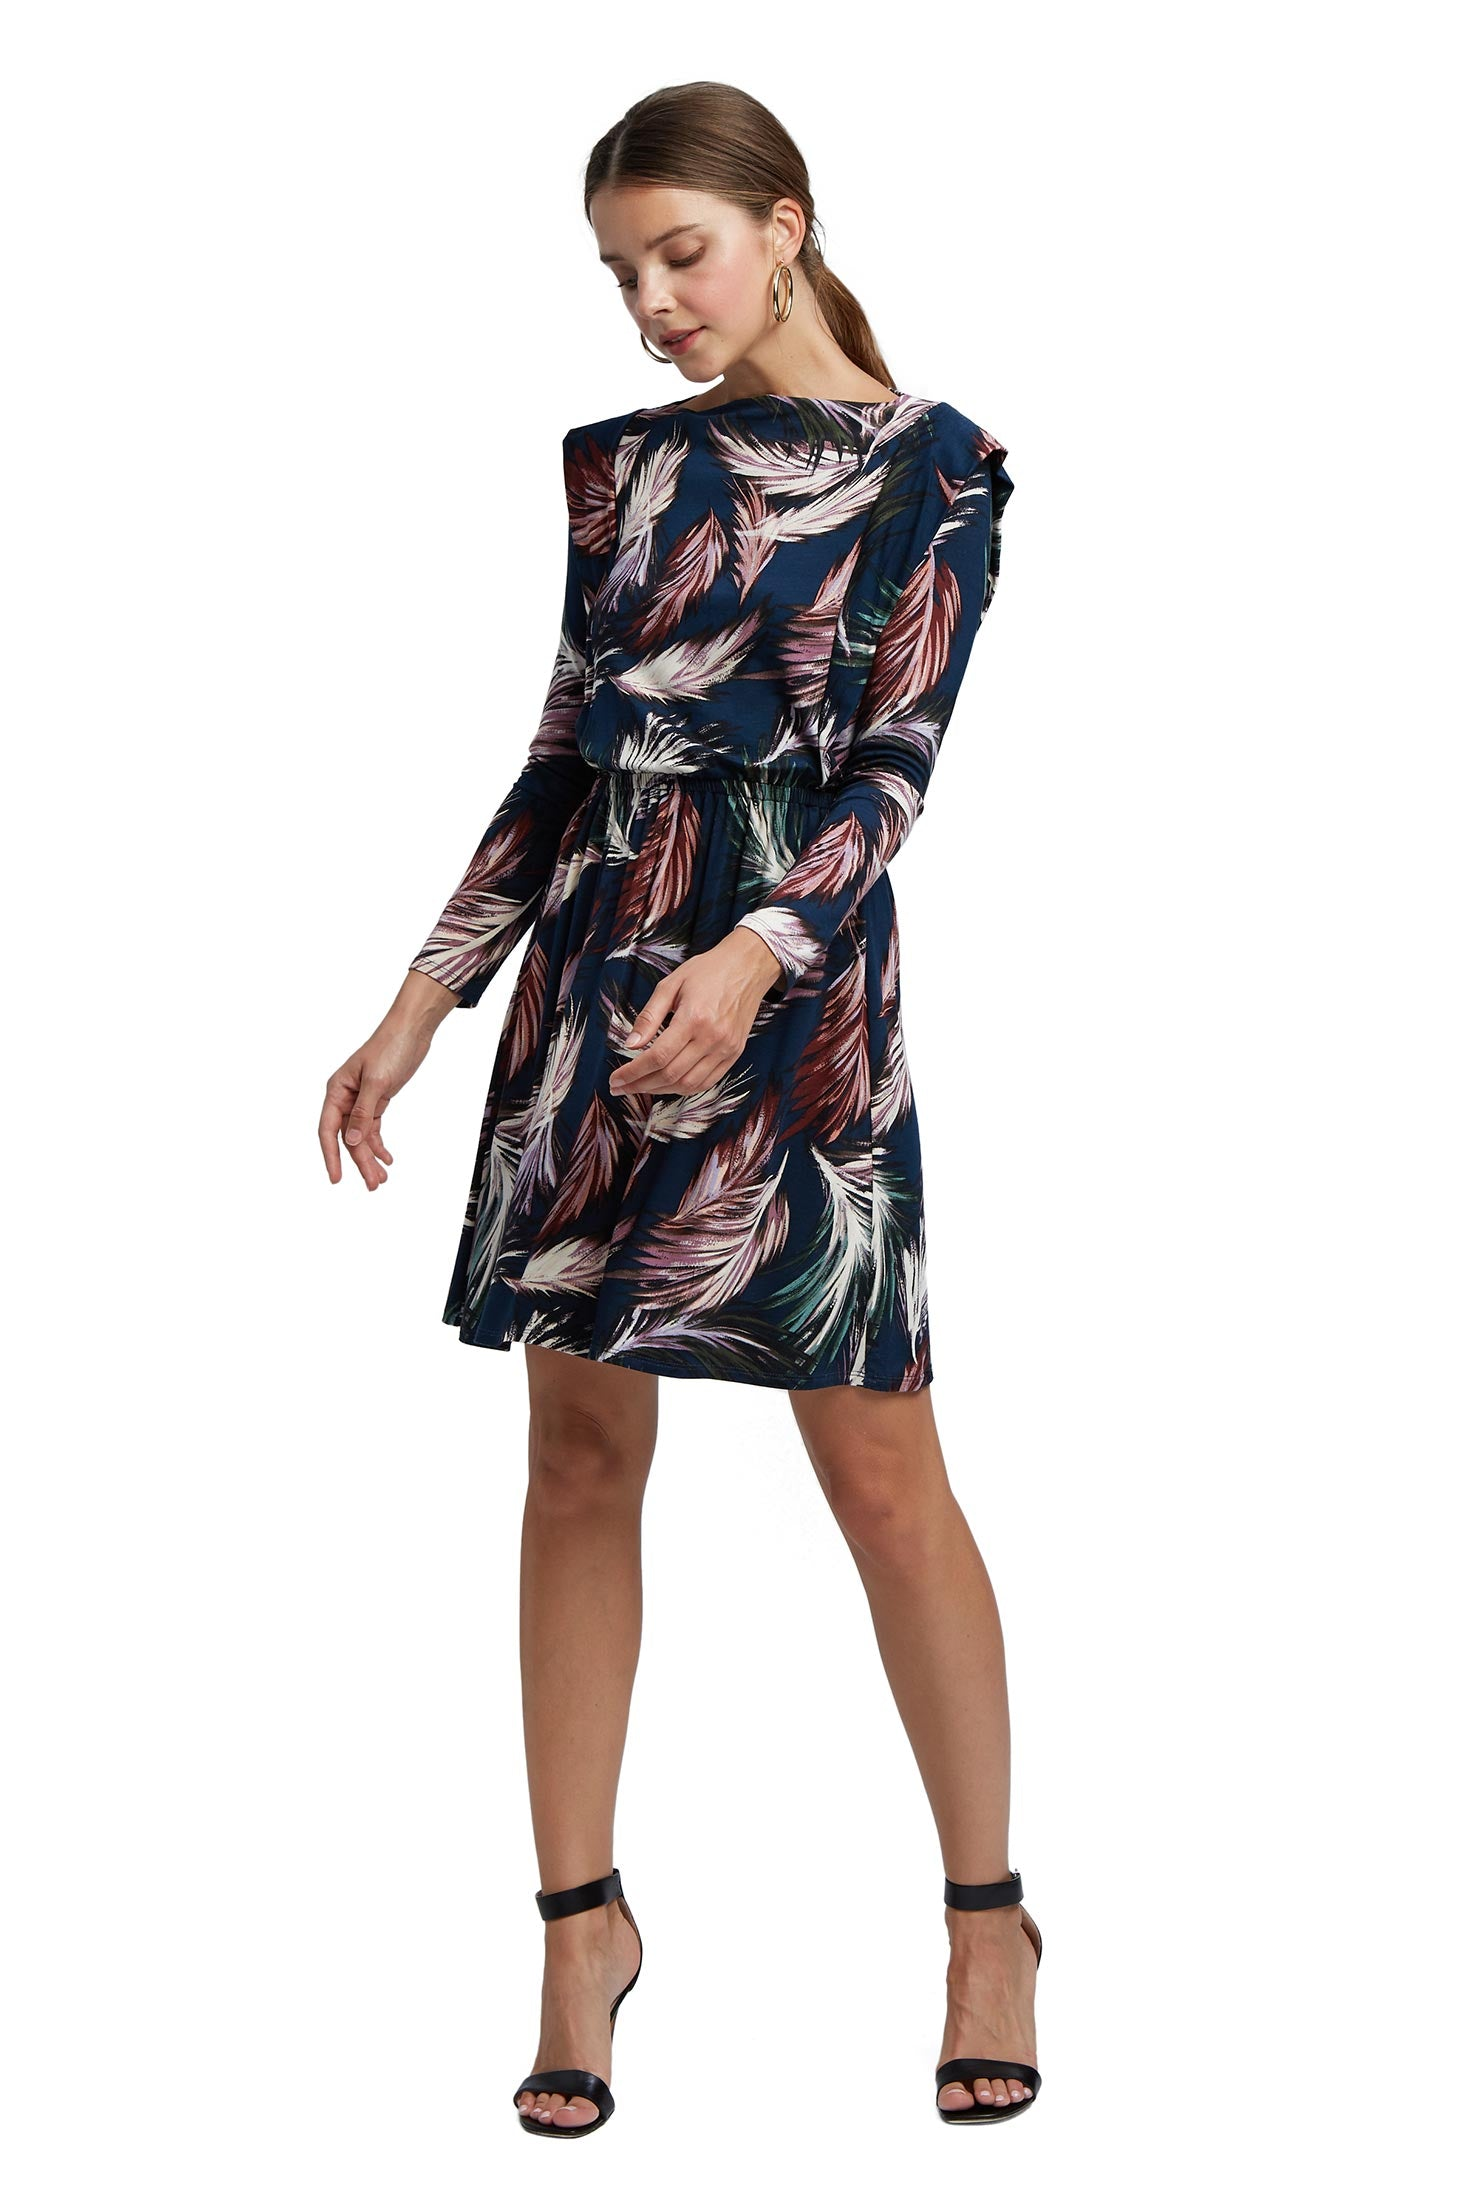 Roanne Dress - Feather Print